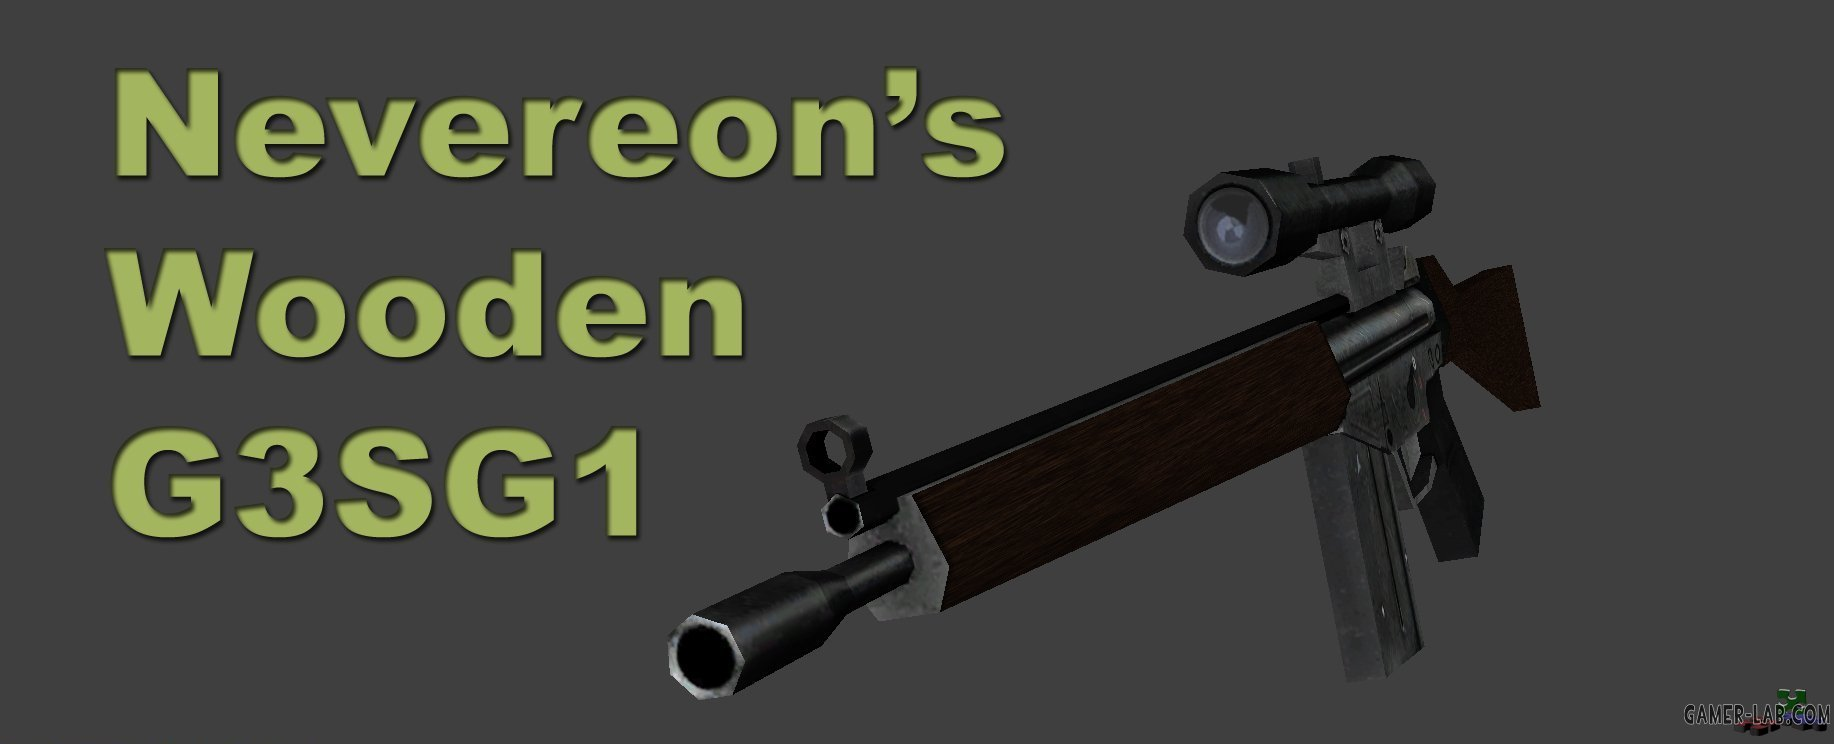 Nevereon_s_Wooden_G3_SG-1